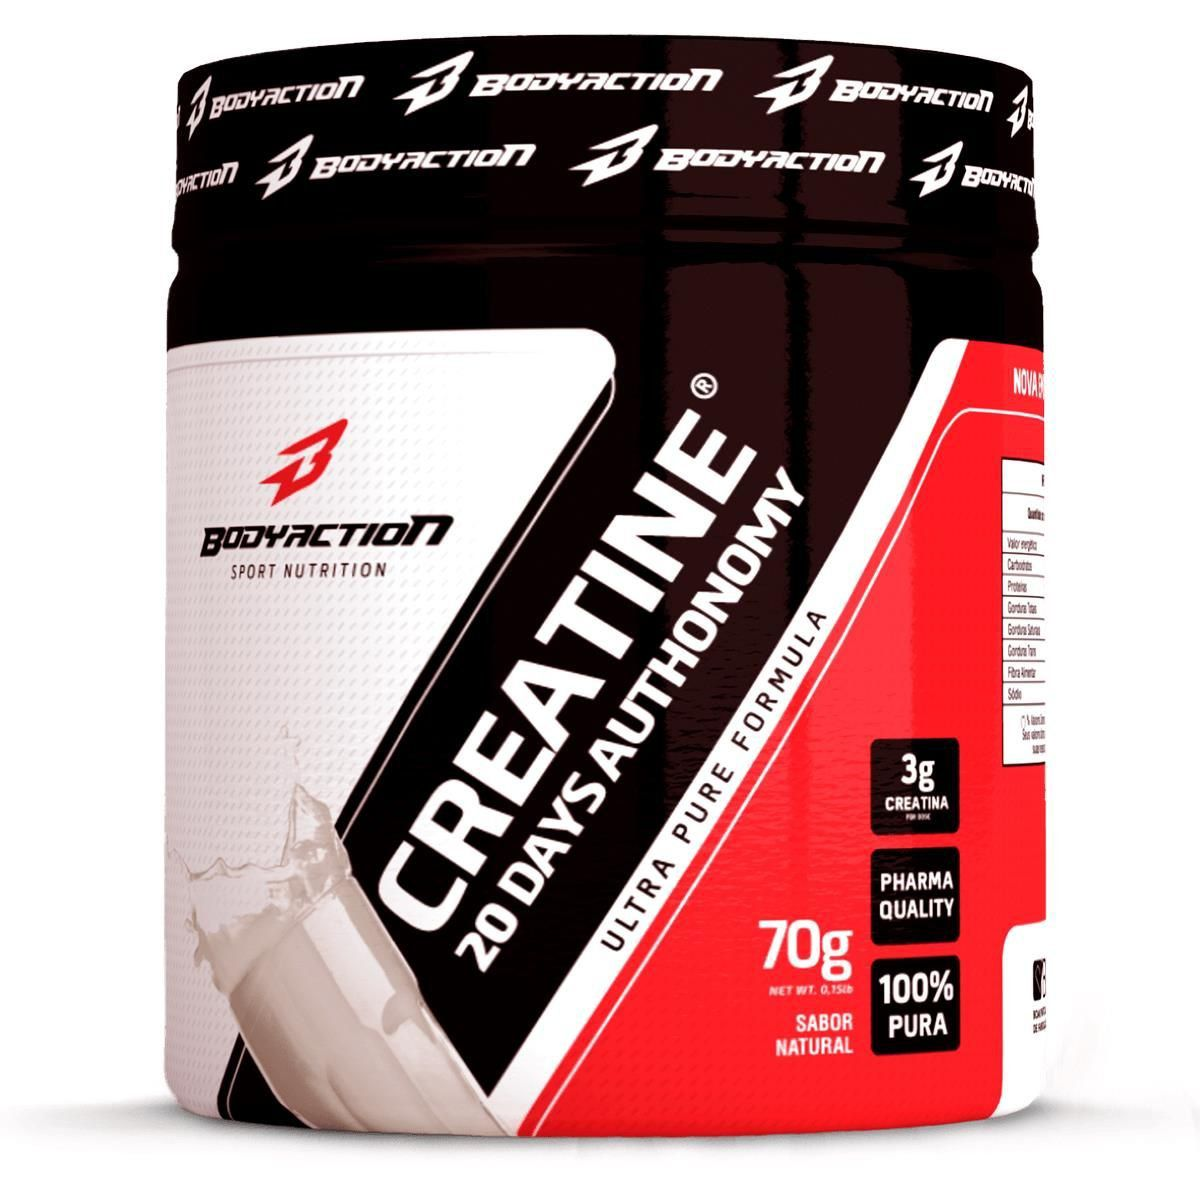 Creatina Powder 20 days Authonomy 100% Pura 3g Creatina/Dose 70g Bodyaction